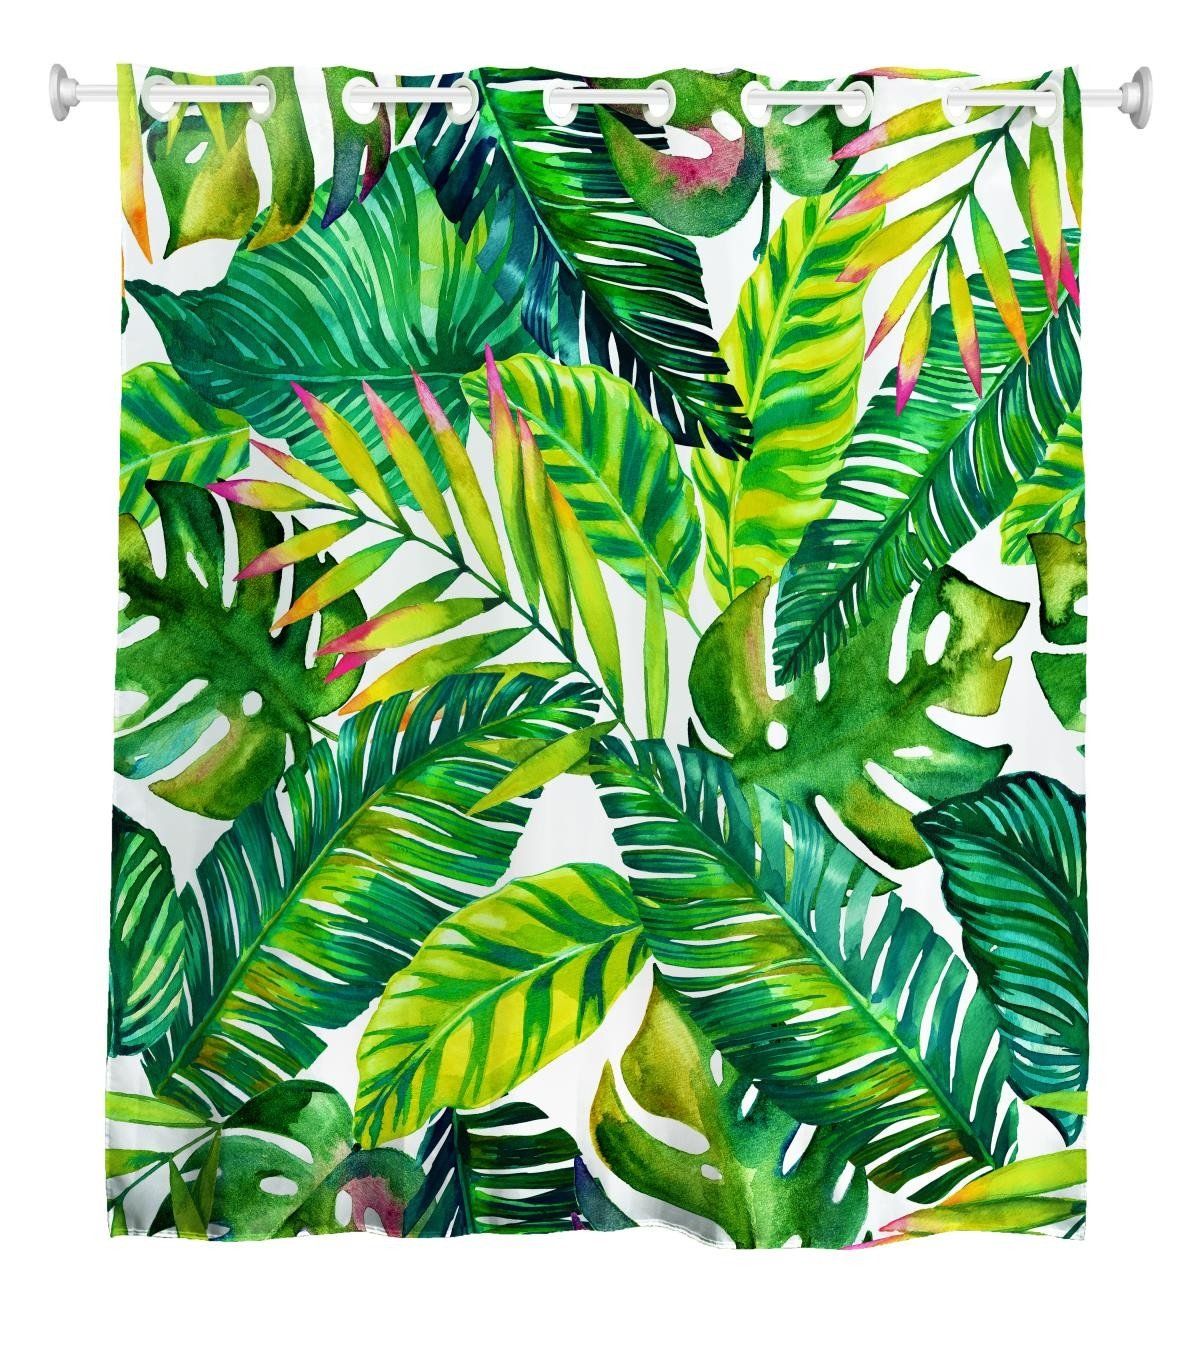 Goodbath Hookless Shower Curtains, Banana Leaves Floral Fabric Waterproof and Mildew Resistant Bathroom Curtain Set with Hooks, Green White by Goodbath